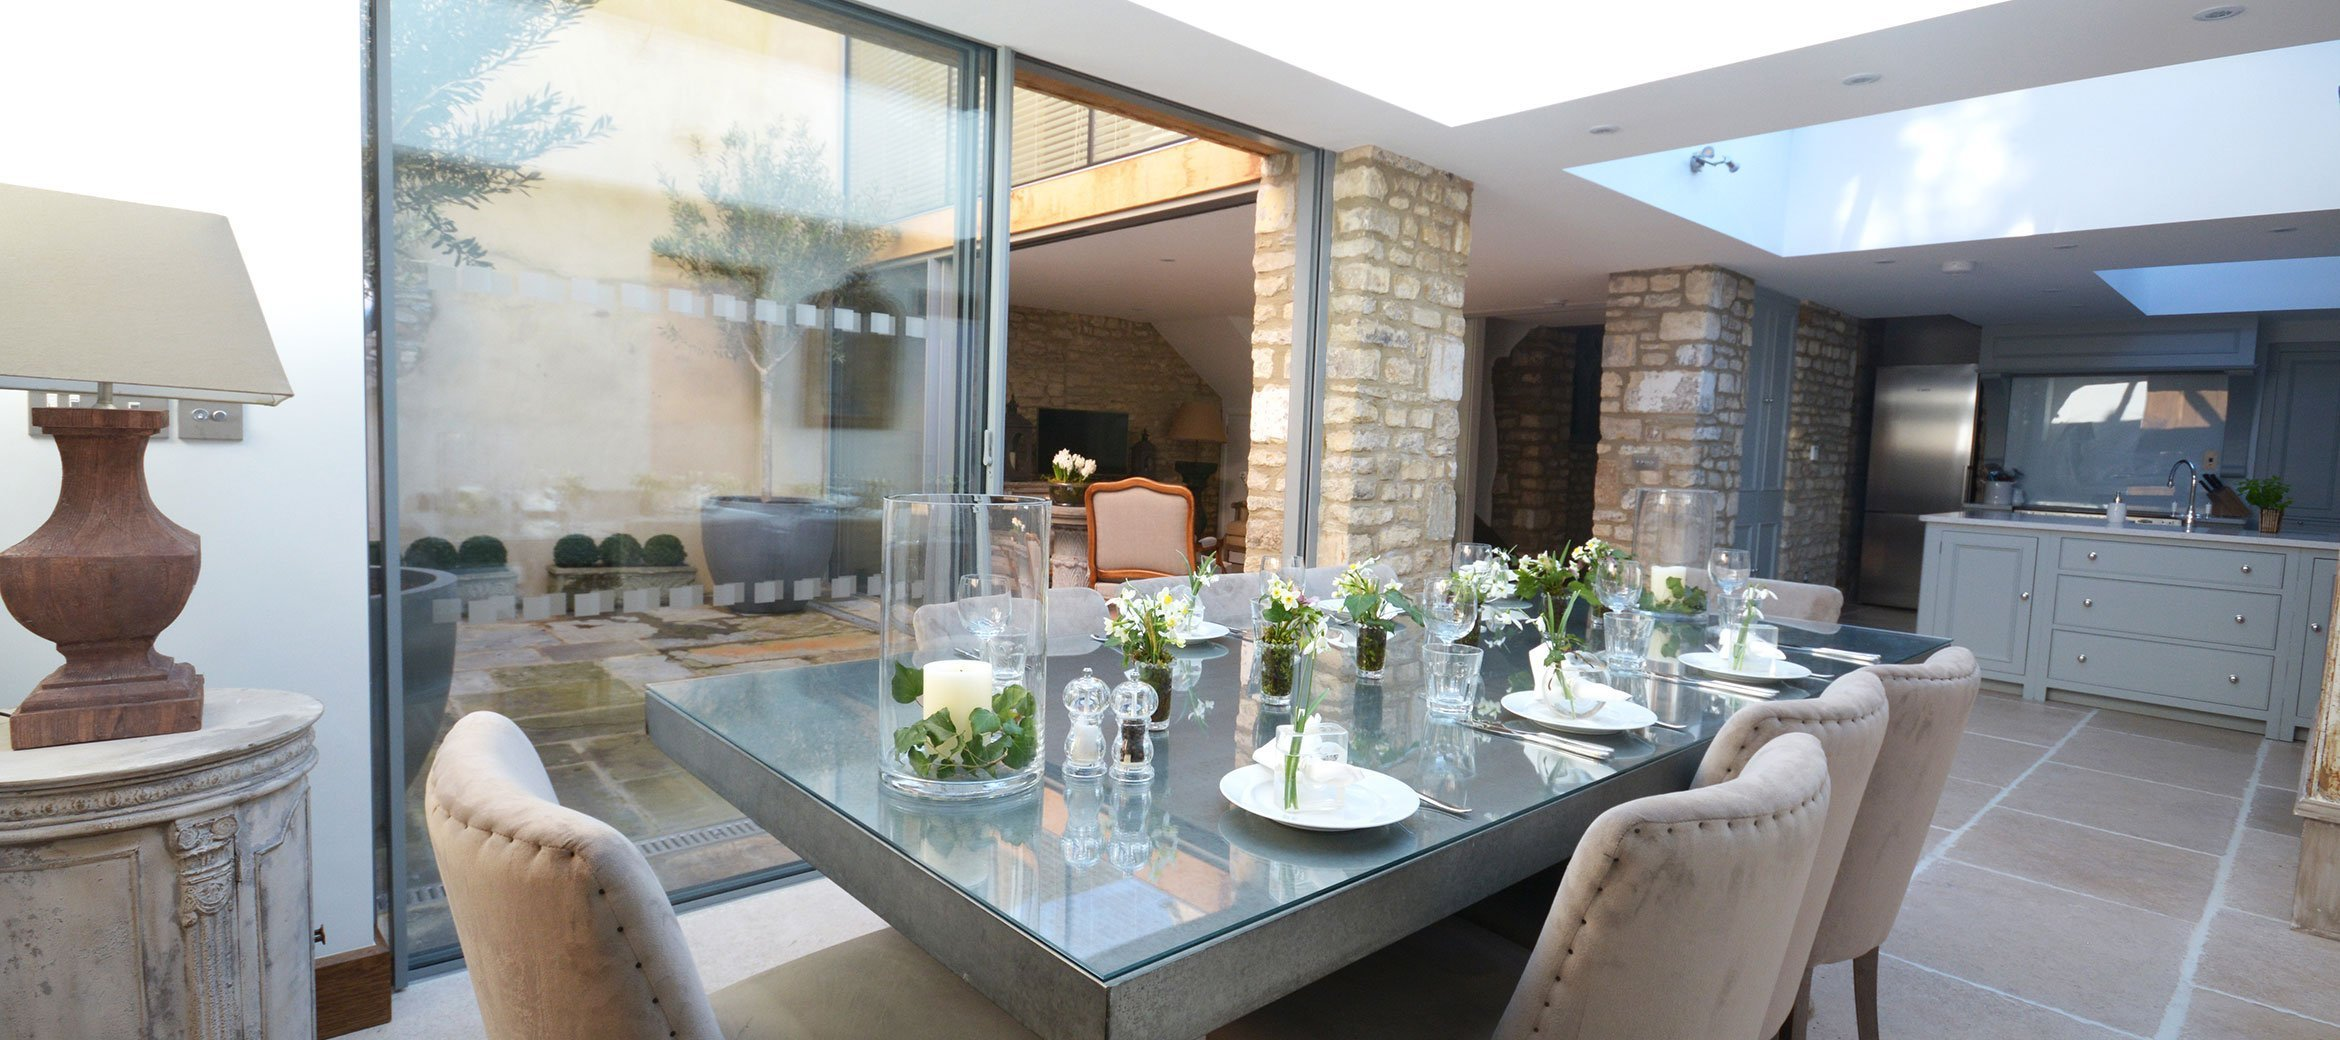 burford-cotswold-cottage-dining-kitchen